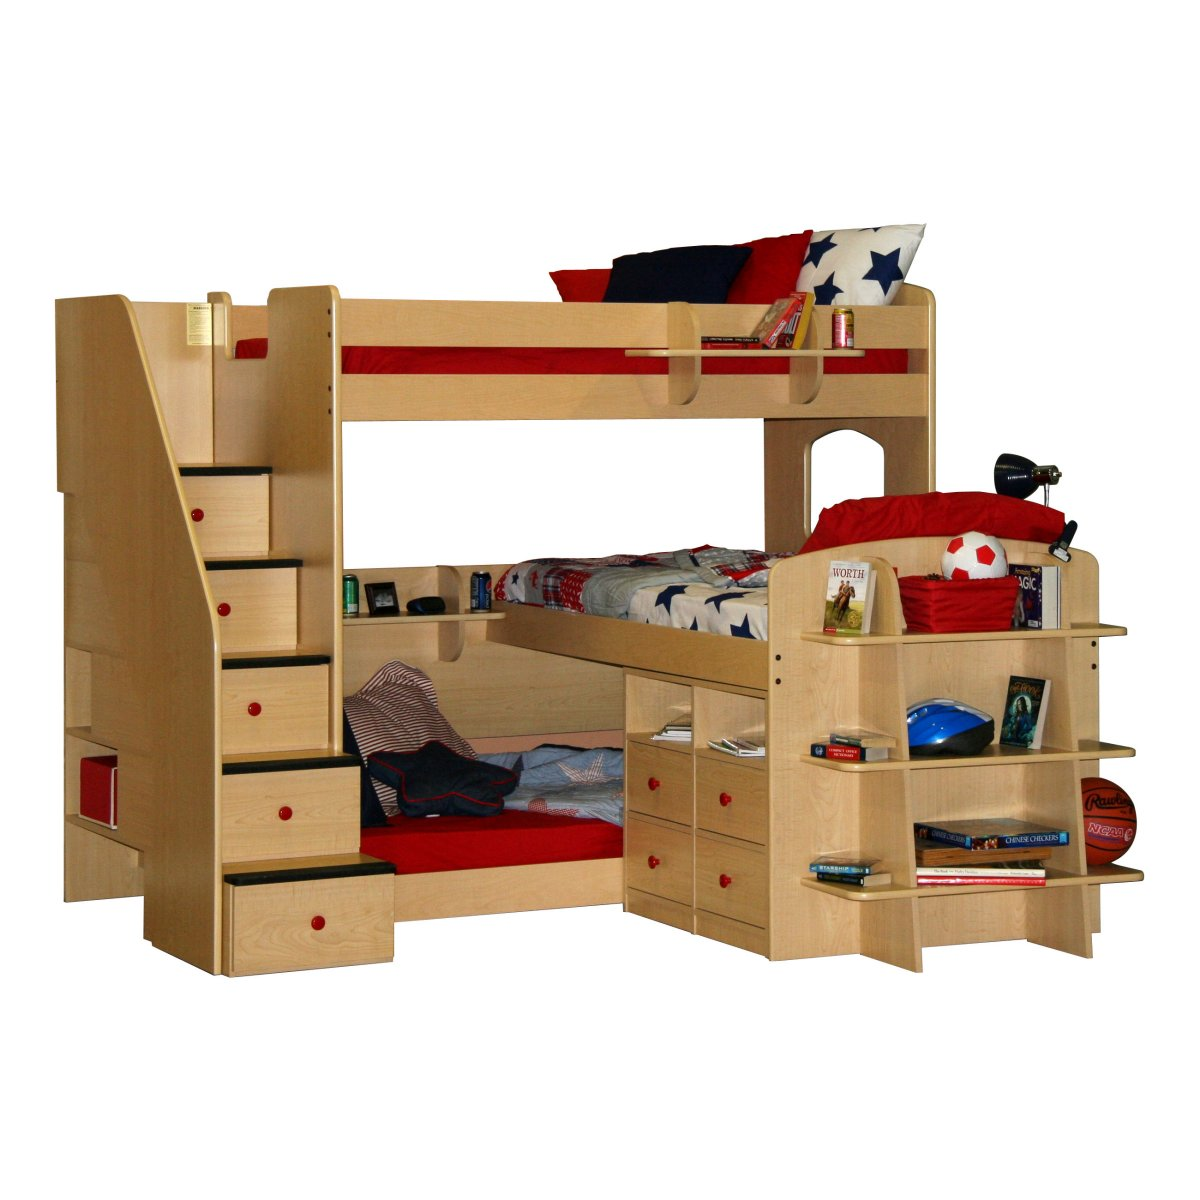 Kansas City Home Ideas: Alternatives to traditional Bunk Beds